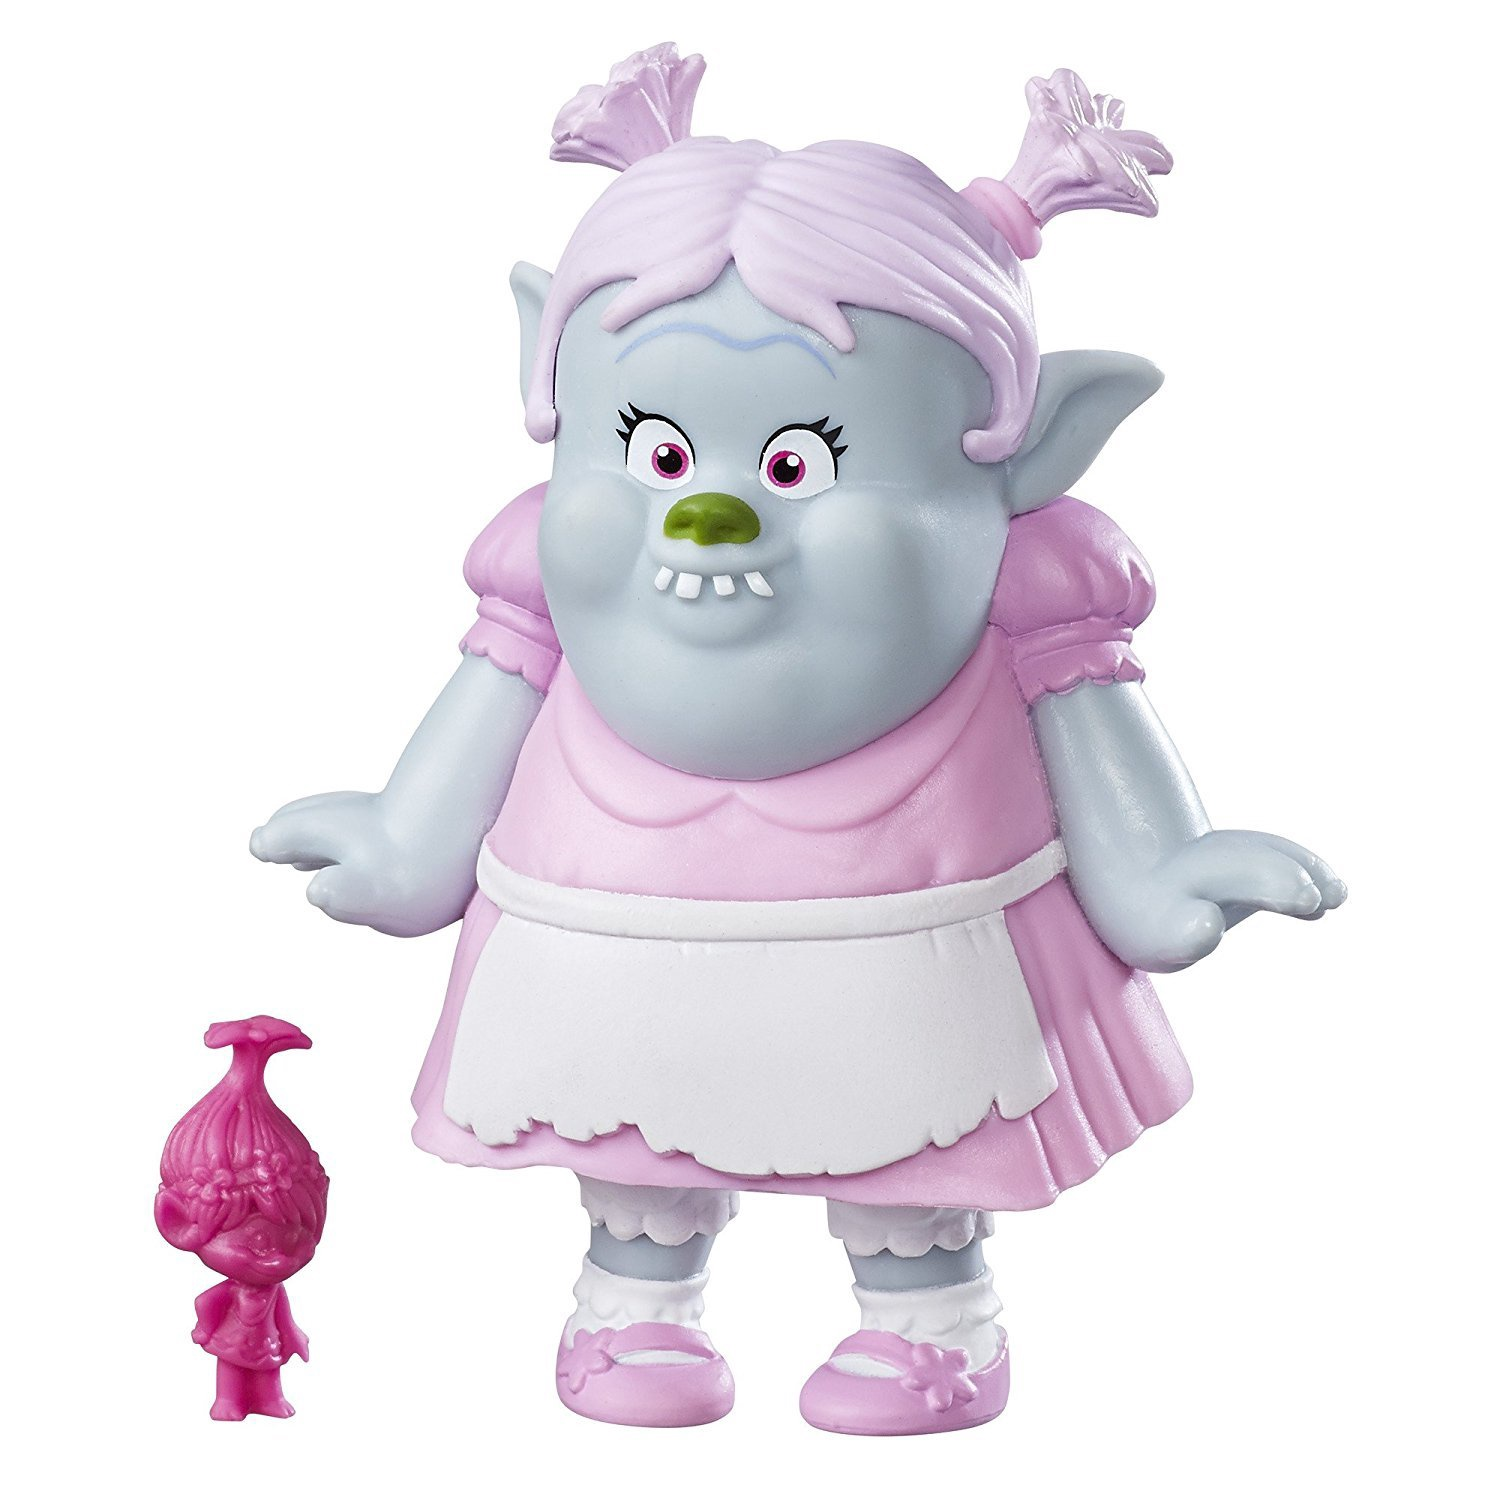 TROLLS BRIDGET COLLECTABLE FIGURE